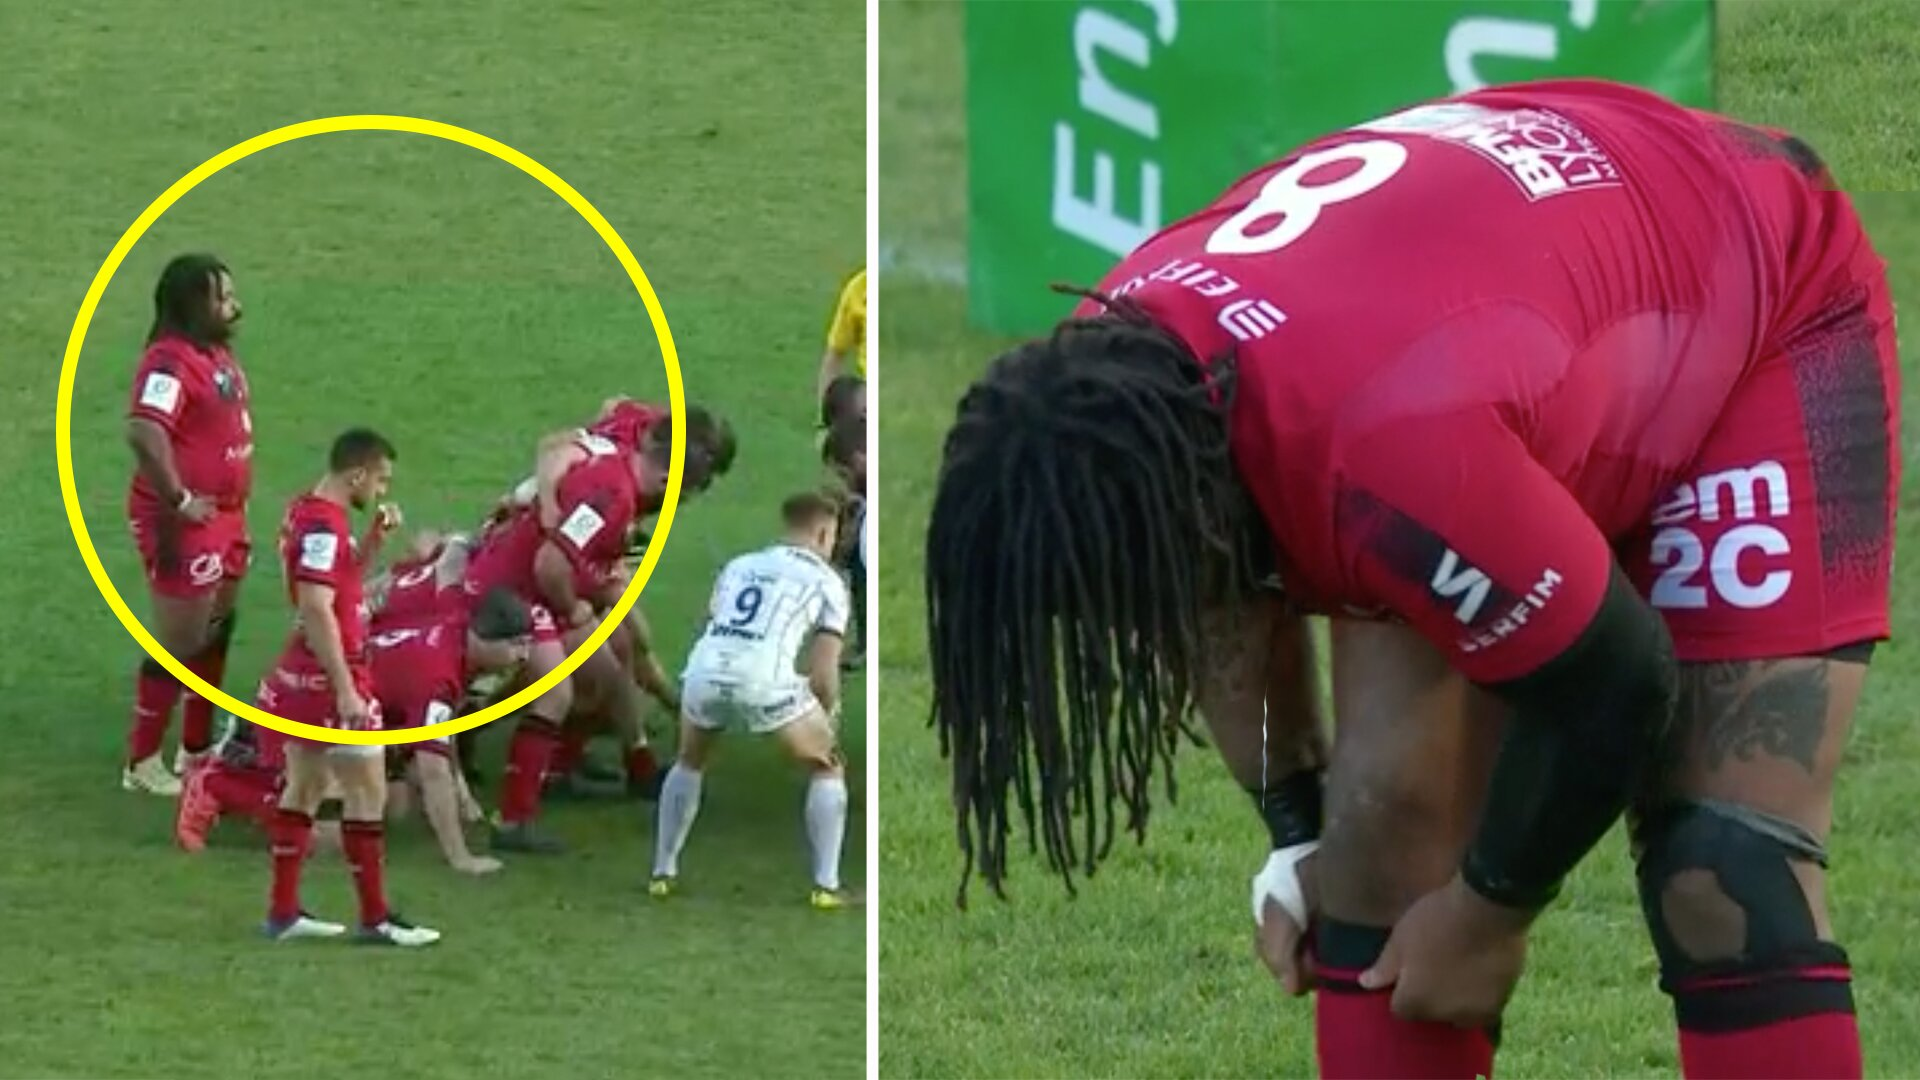 Mathieu Bastareaud has fully transitioned into a Number 8 and the results are terrifying